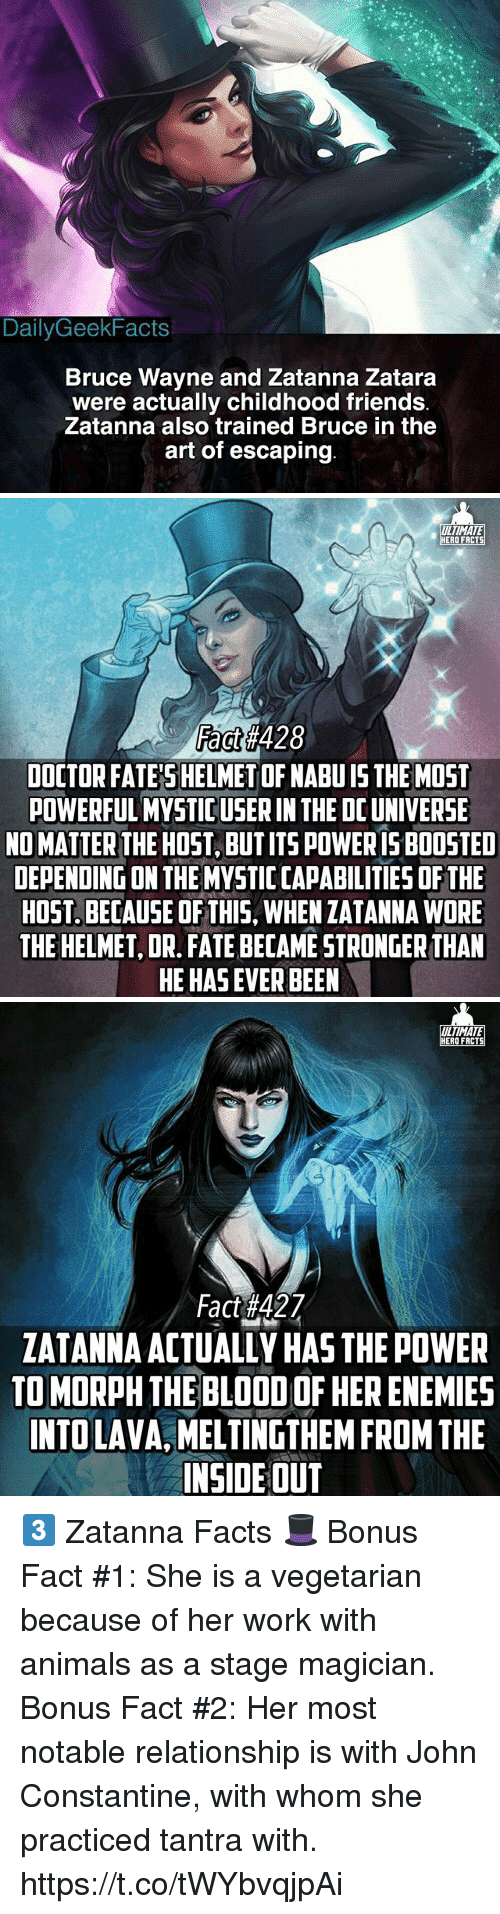 john constantine: DailyGeekFacts  Bruce Wayne and Zatanna Zatara  were actually childhood friends  Zatanna also trained Bruce in the  art of escaping   ULTIMATE  ERO FRCTS  Fact#428  DOCTOR FATE'SHELMET OF NABU IS THE MOST  POWERFUL MYSTIC USER IN THE DC UNIVERSE  NO MATTER THE HOST, BUT ITS POWERIS BOOSTED  DEPENDING ON THE MYVSTIC CAPABILITIES OF THE  HOST. BECAUSE OF THIS, WHEN ZATANNA WORE  THE HELMET, DR. FATE BECAME STRONGER THAN  HE HAS EVER BEEN   TIMATE  ZATANNA ACTUALLY HAS THE POWER  TO MORPH THE BLOOD OF HER ENEMIES  INTO LAVA, MELTINGTHEM FROM THE  INSIDE OUT 3️⃣ Zatanna Facts 🎩  Bonus Fact #1: She is a vegetarian because of her work with animals as a stage magician.  Bonus Fact #2: Her most notable relationship is with John Constantine, with whom she practiced tantra with. https://t.co/tWYbvqjpAi